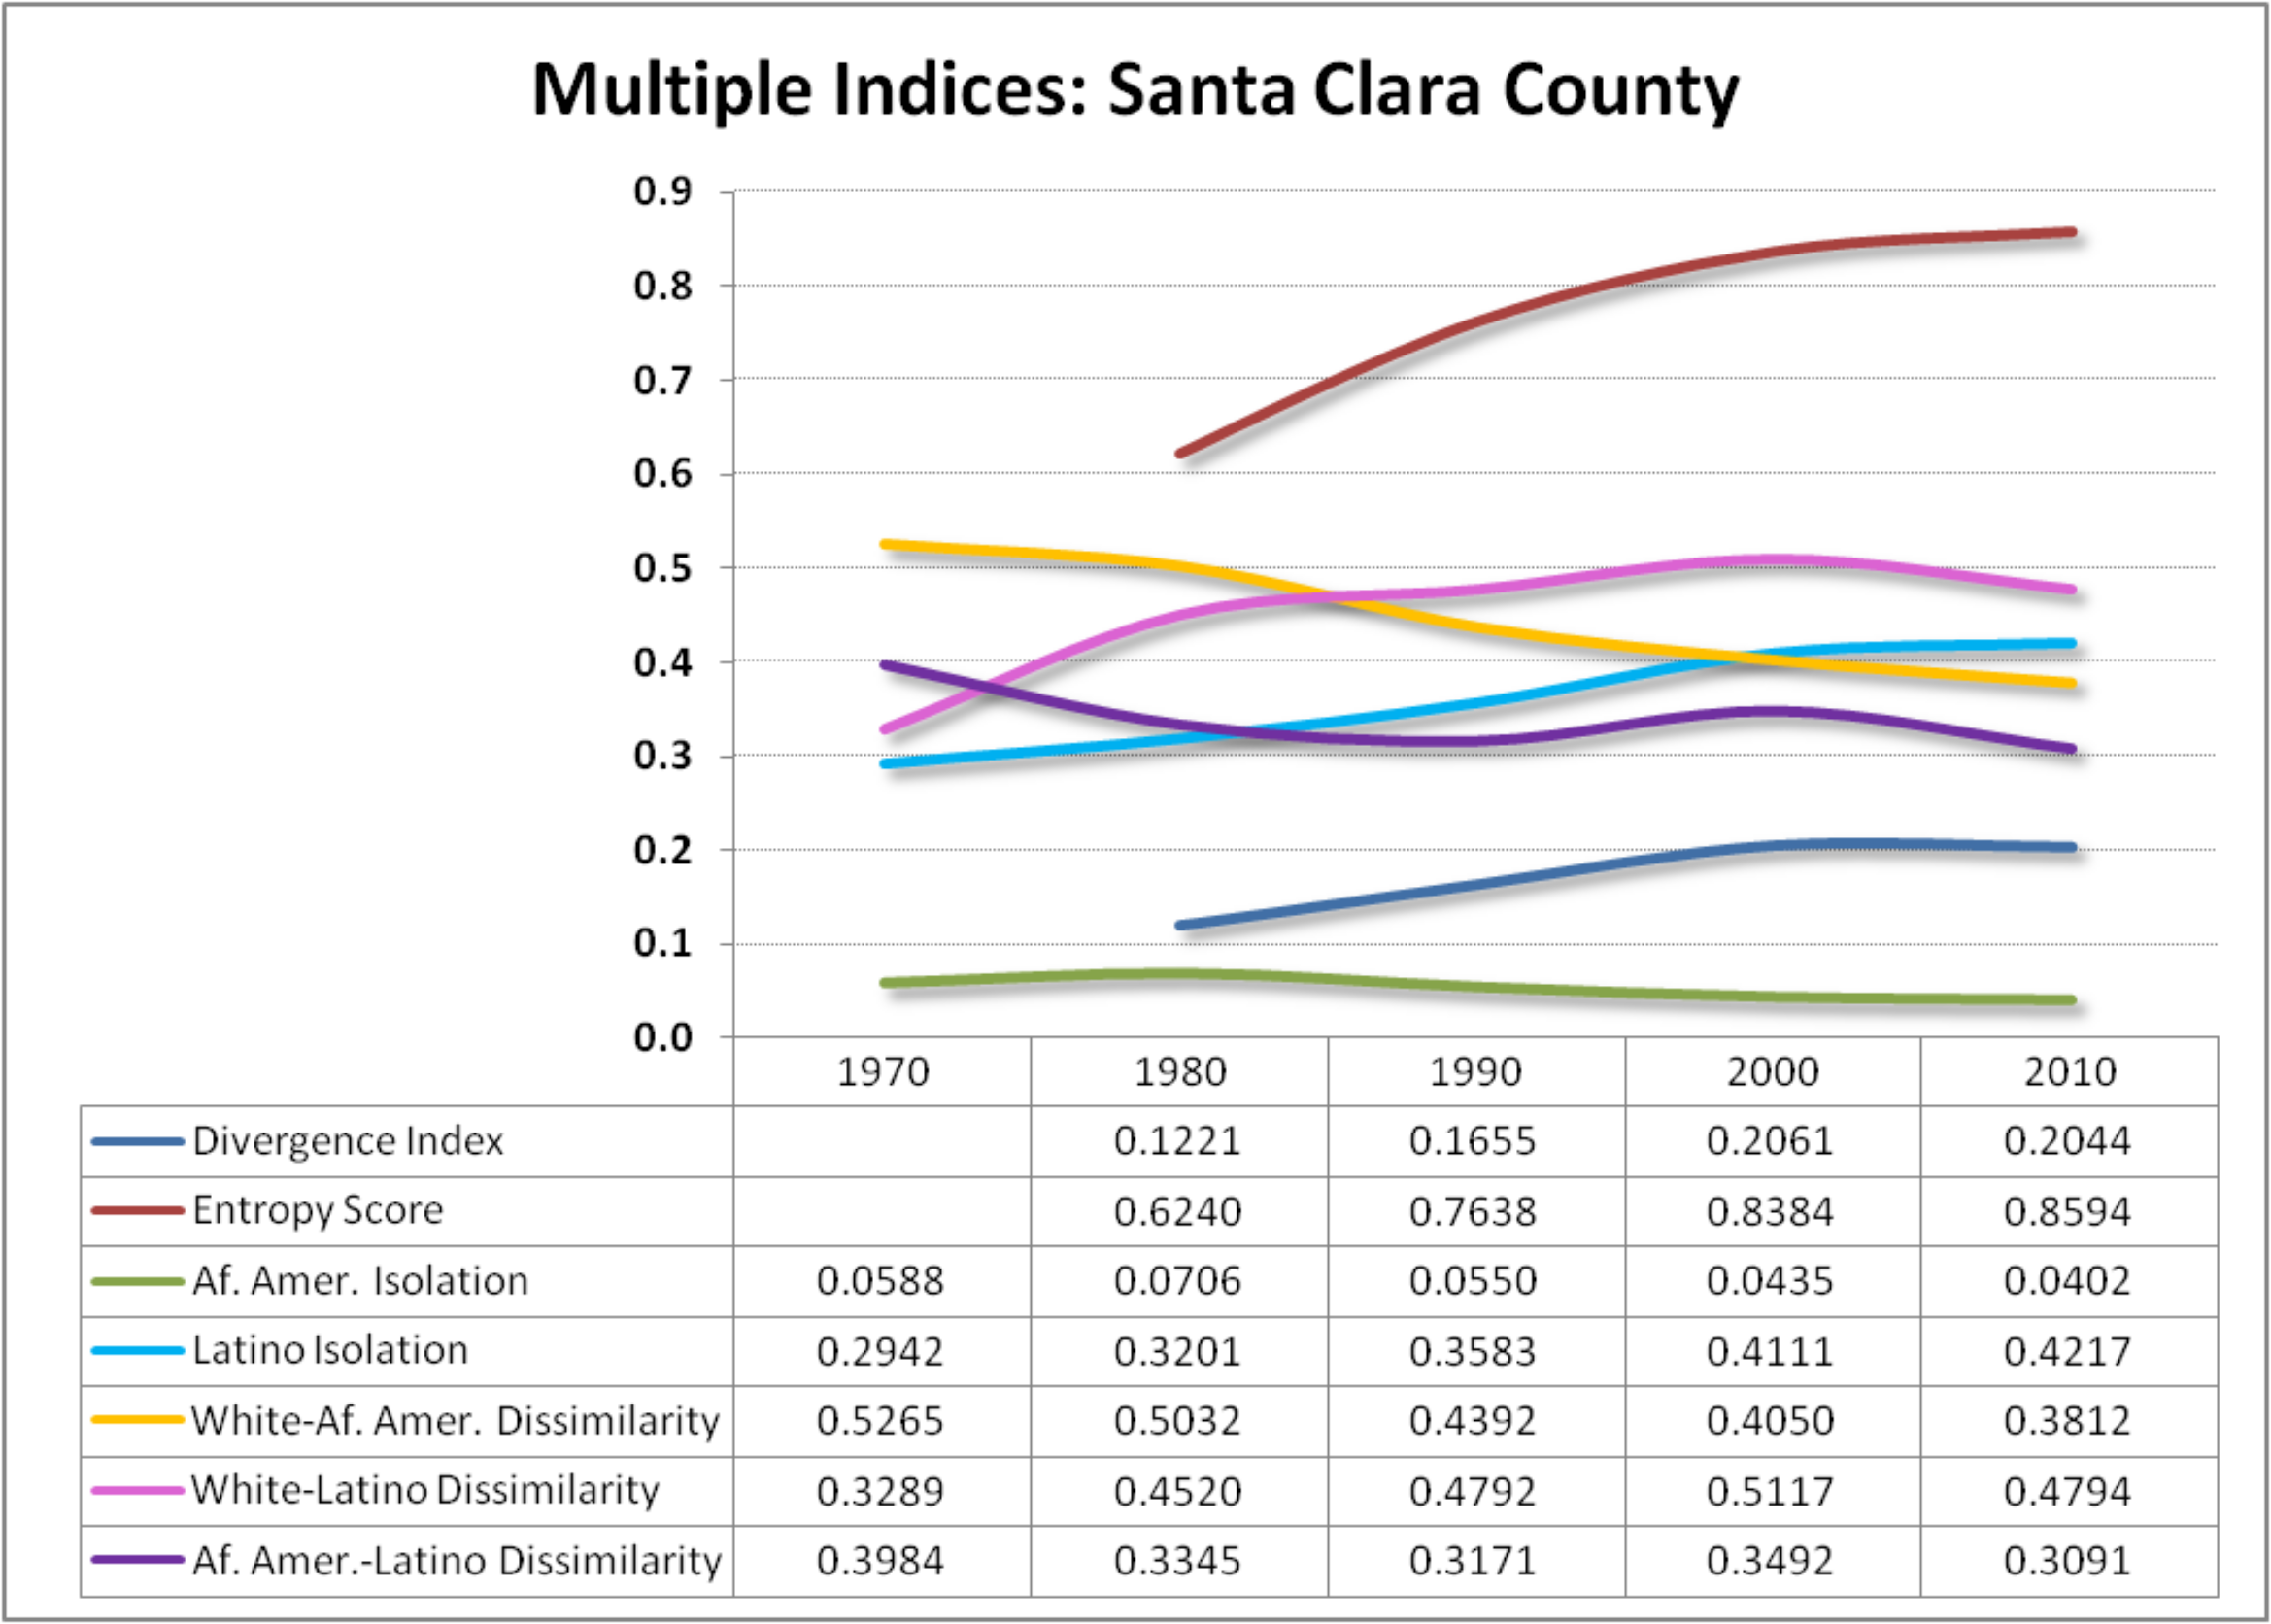 Santa Clara County, which houses the region's largest city, has very different demographics but also tells a similar story. The main difference is that segregation has stabilized since 2000 while having risen since 1980.